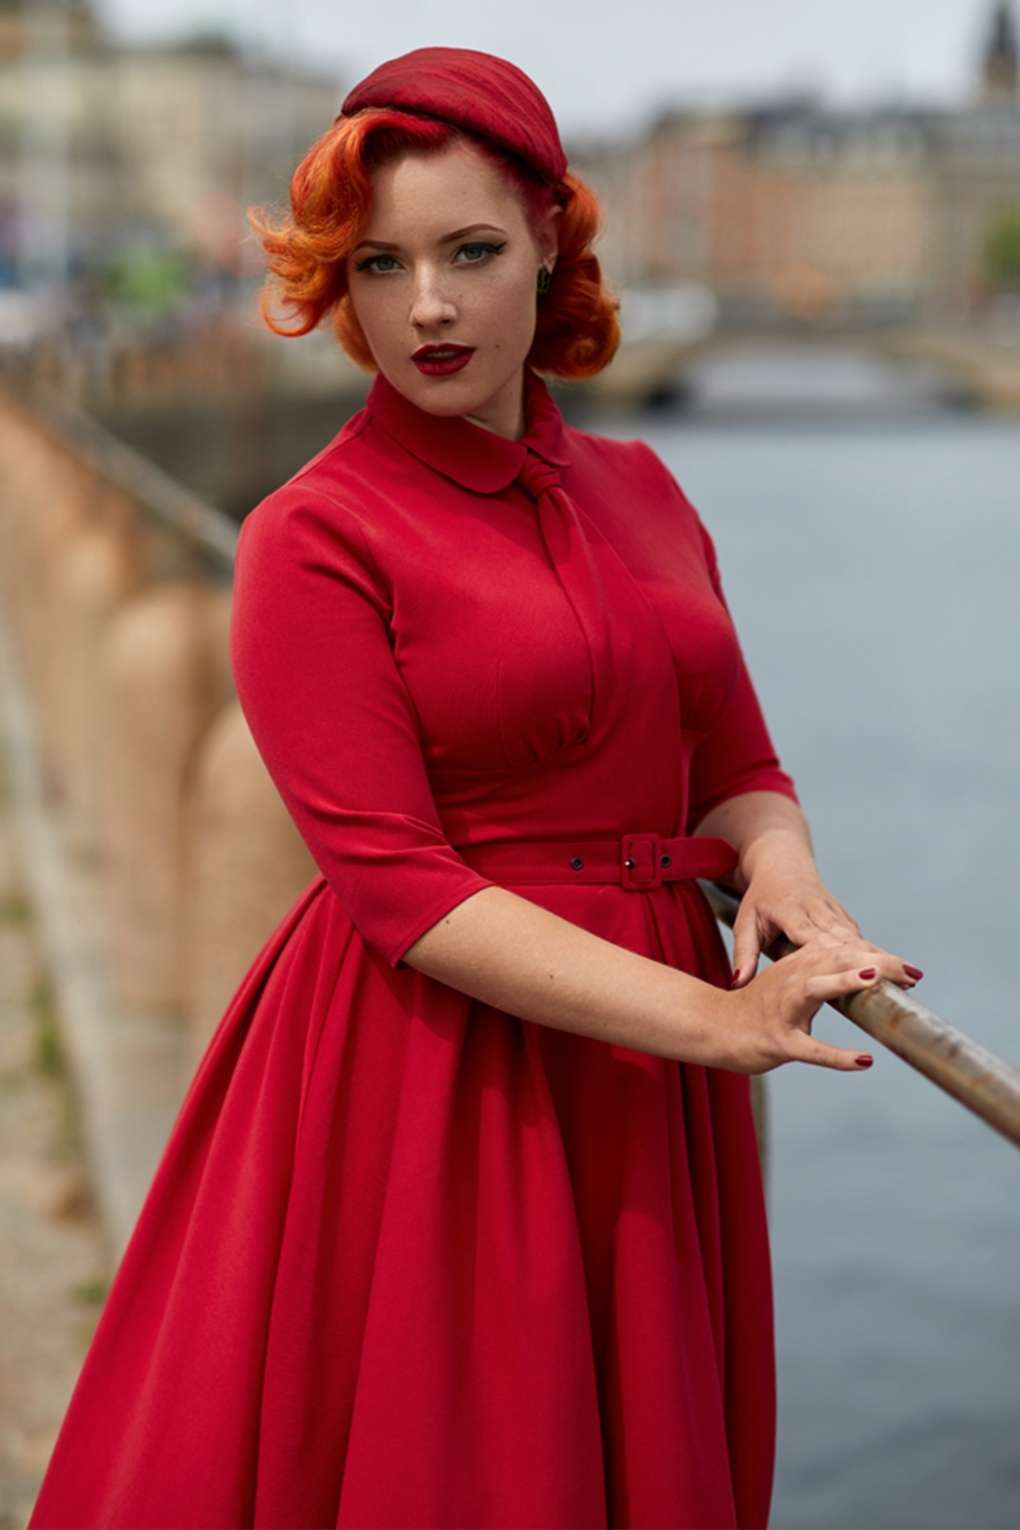 1940s Plus Size Fashion: Style Advice from 1940s to Today 40s Adele Rose Neck Tie Swing Dress in Red £68.90 AT vintagedancer.com